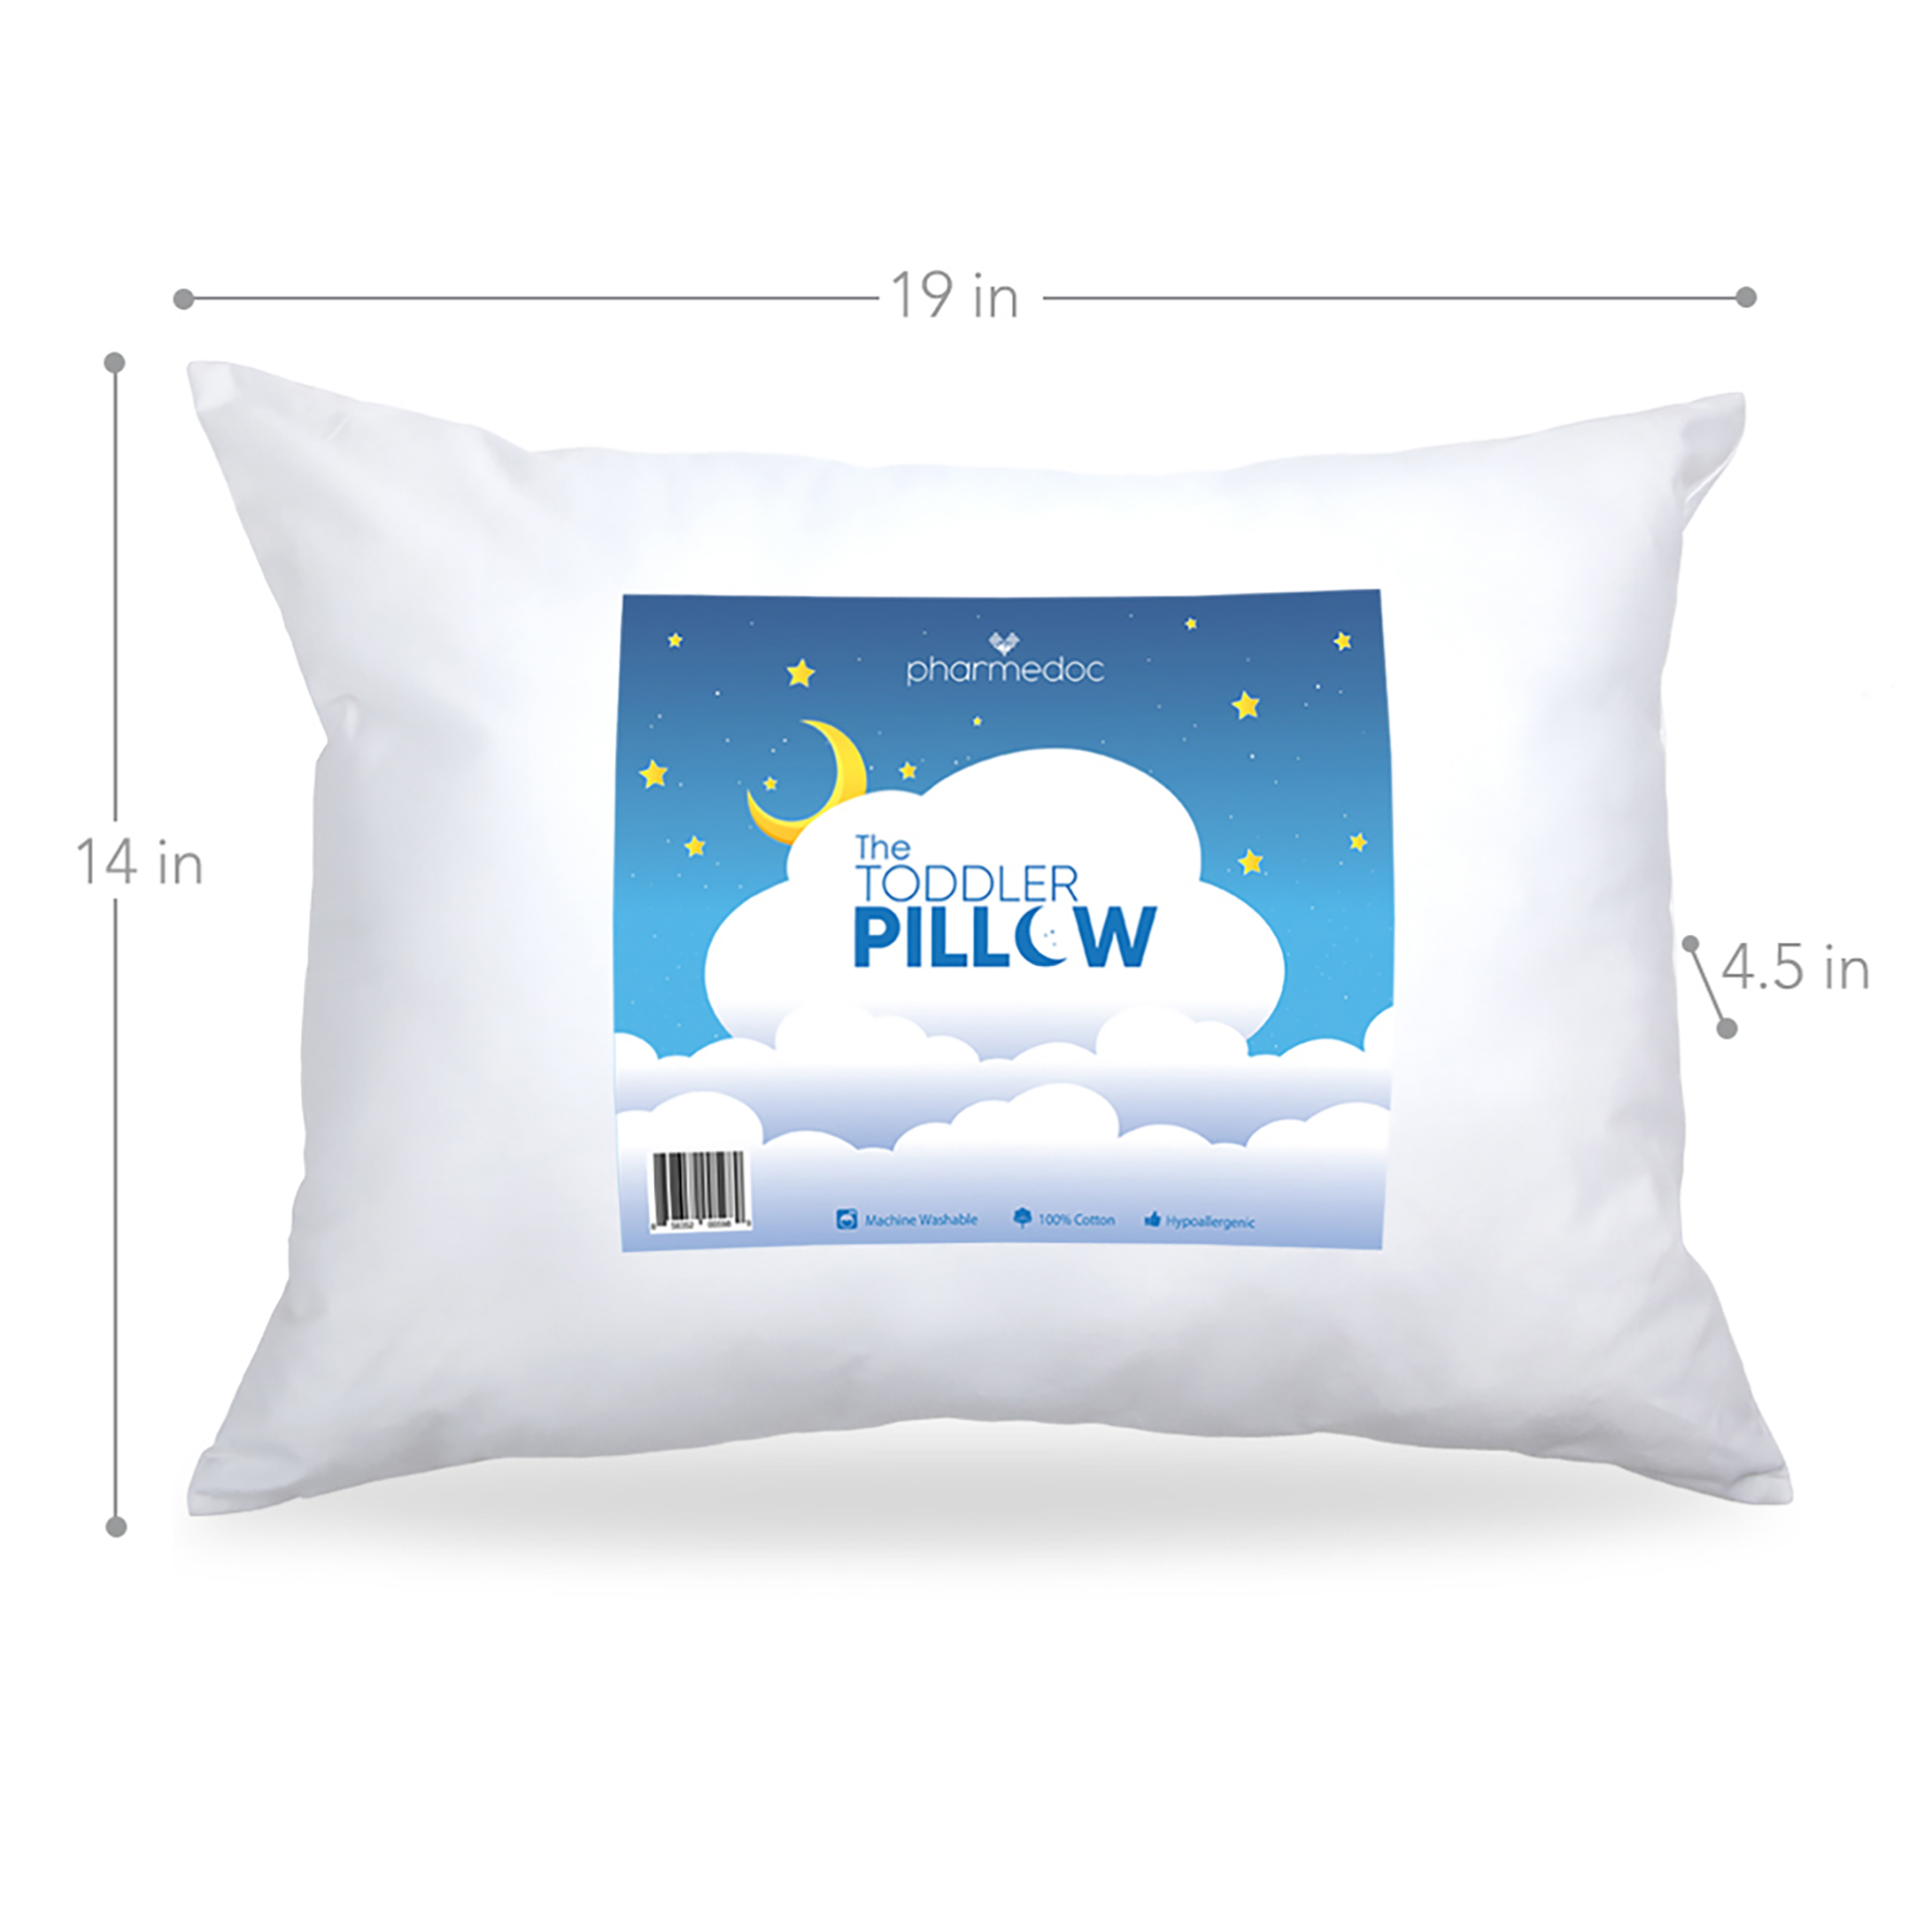 hypoallergenic toddler pillow small pillow for kids 4 patterns to choose from white